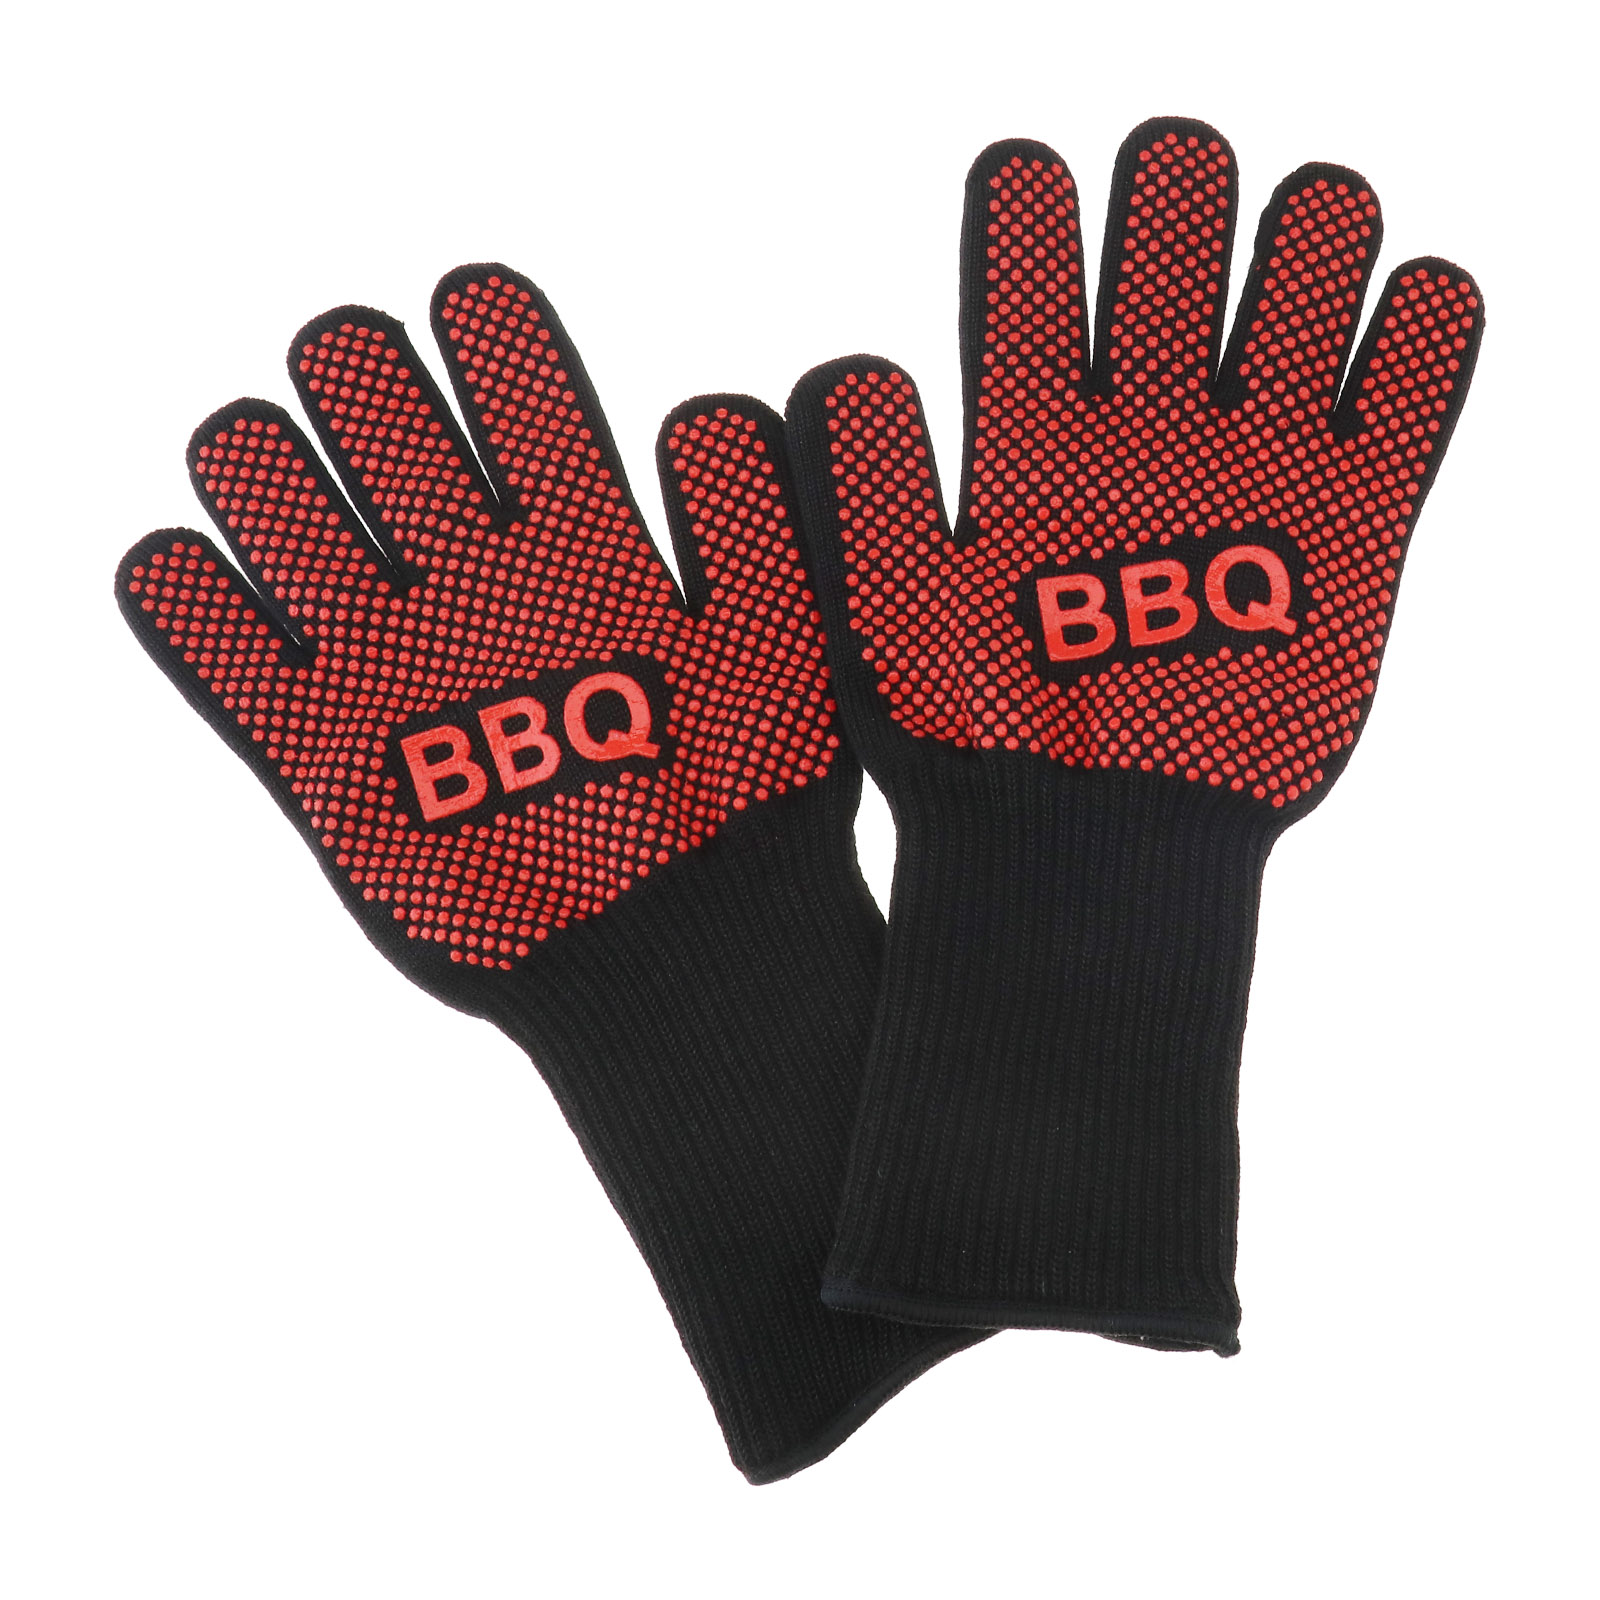 Gloves Heat Resistant Silicone Gloves Kitchen BBQ Oven Cooking Mitts Silicone